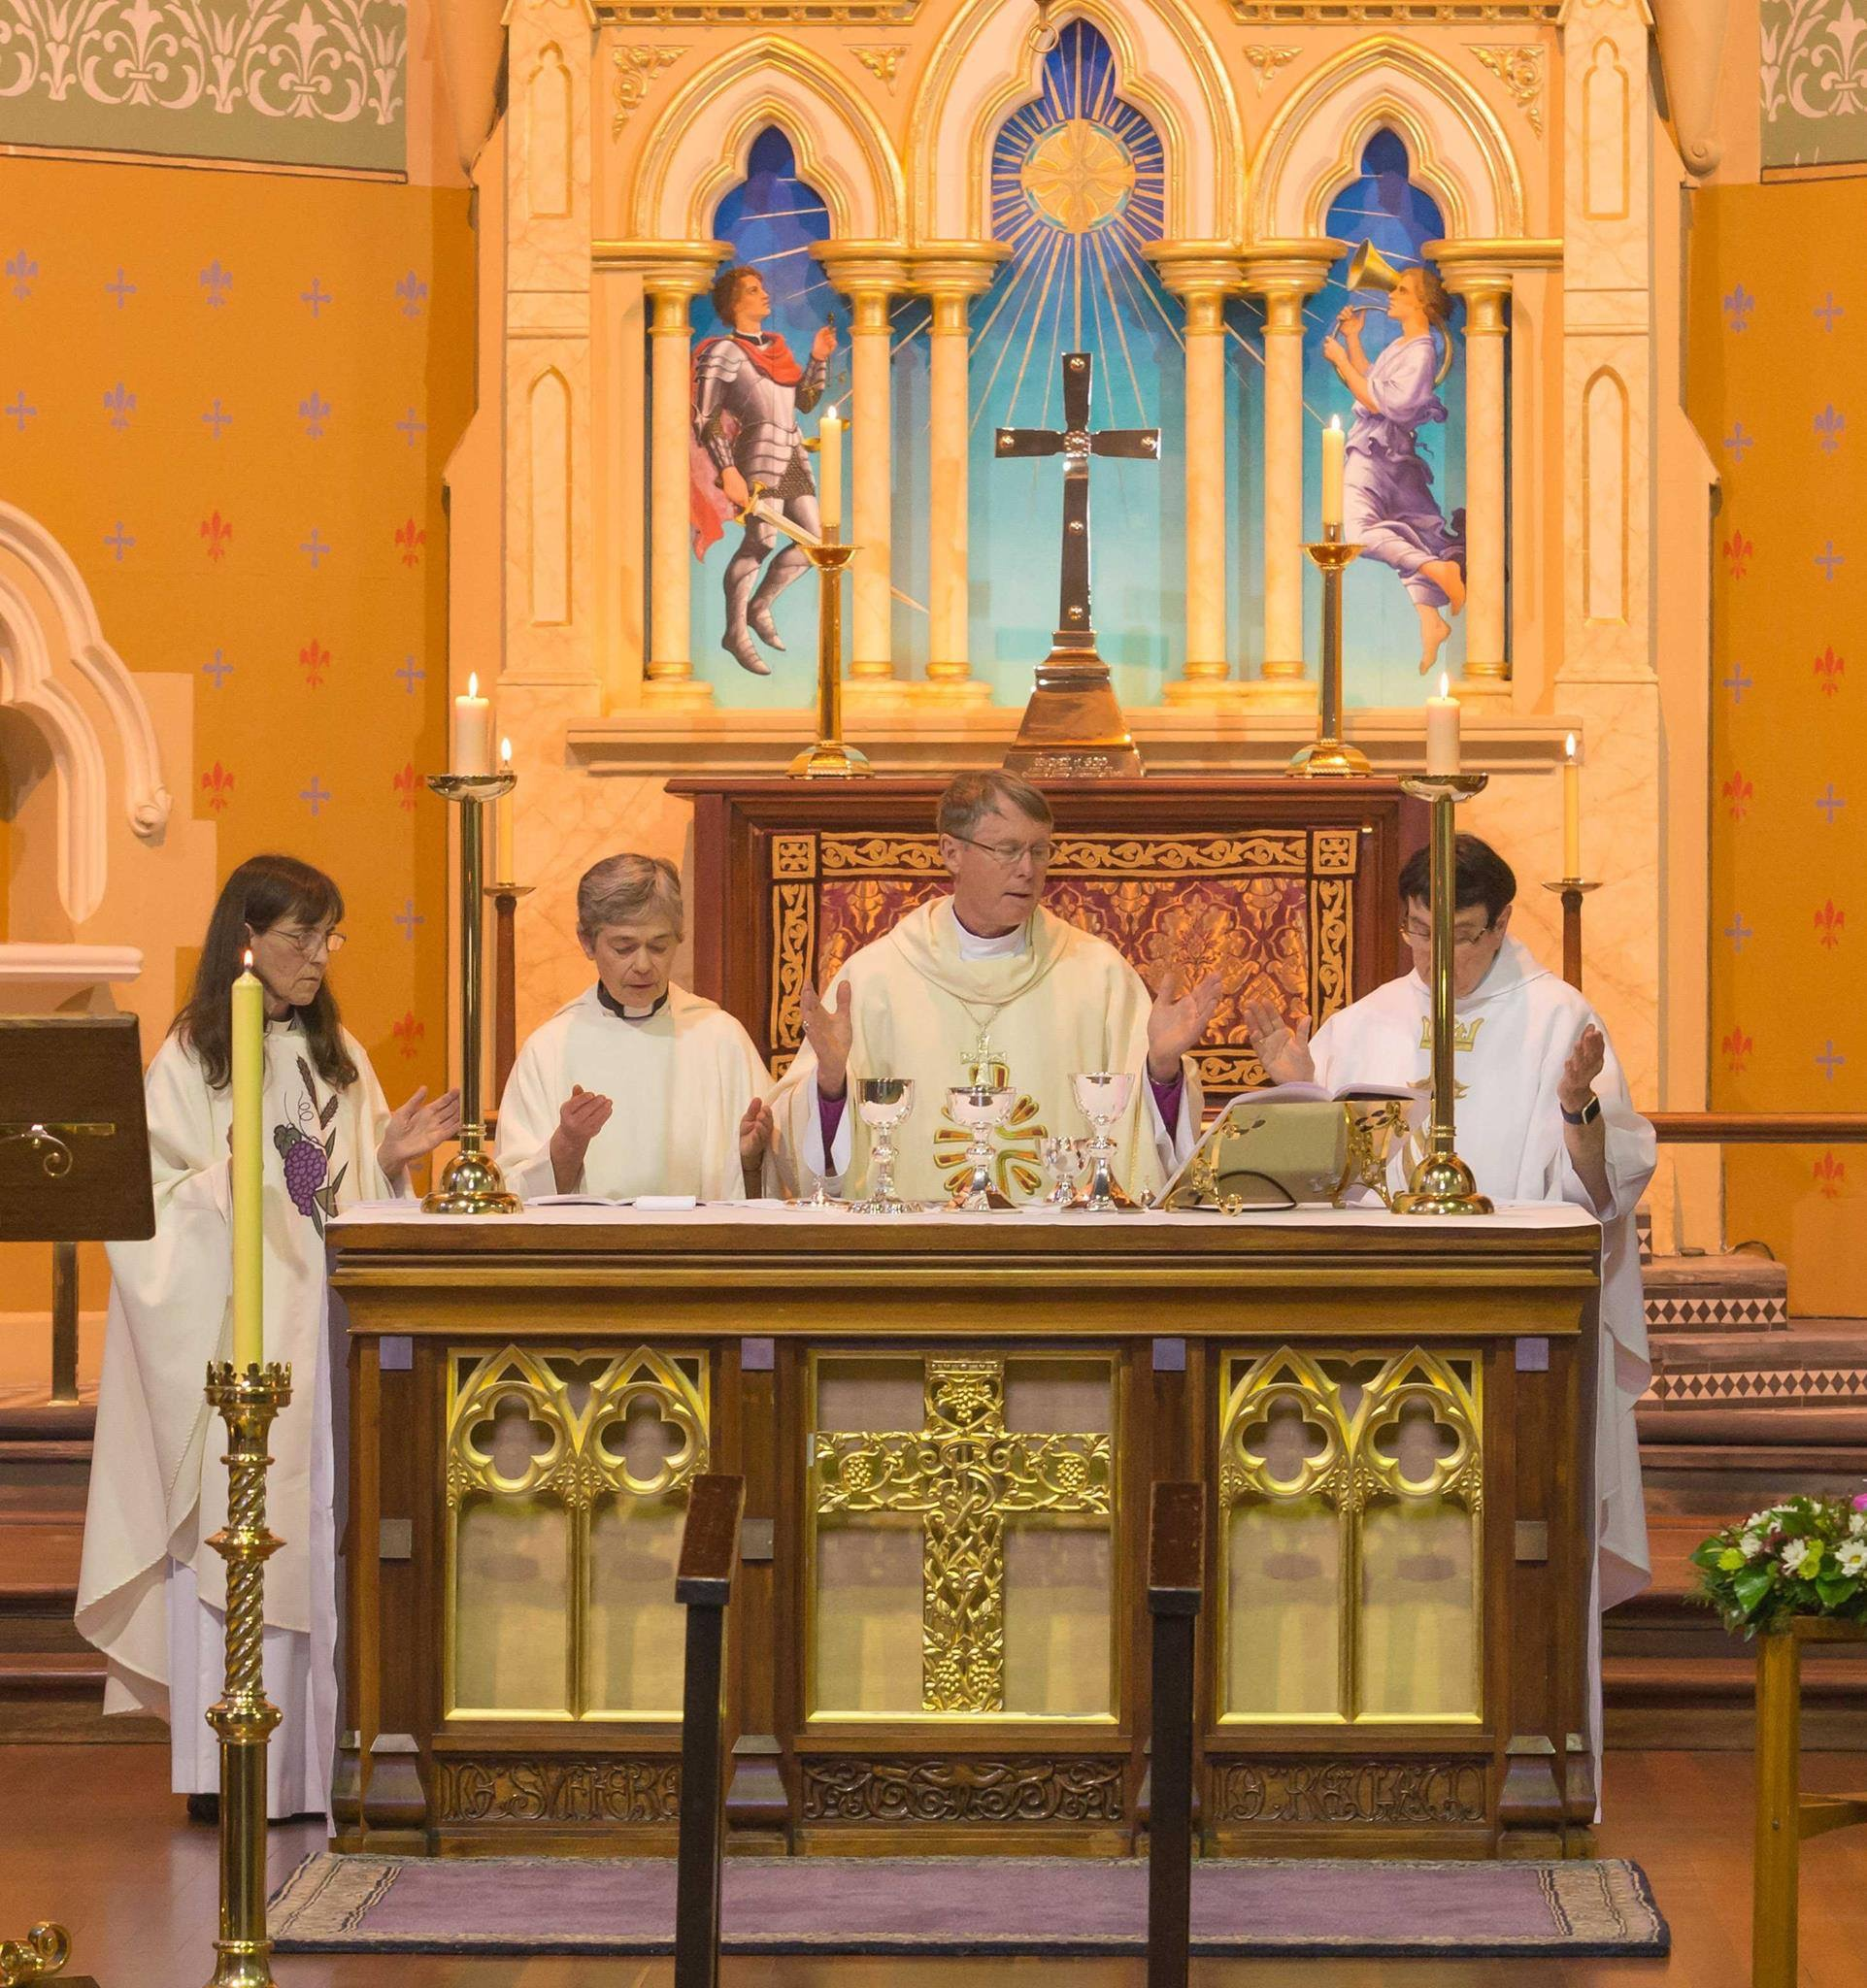 Archbishop Geoff Smith concelebrated the Eucharist with the Rev'd Joan Claring Bould, the Rev'd Susan Straub and the Rev'd Sr Juliana SI.